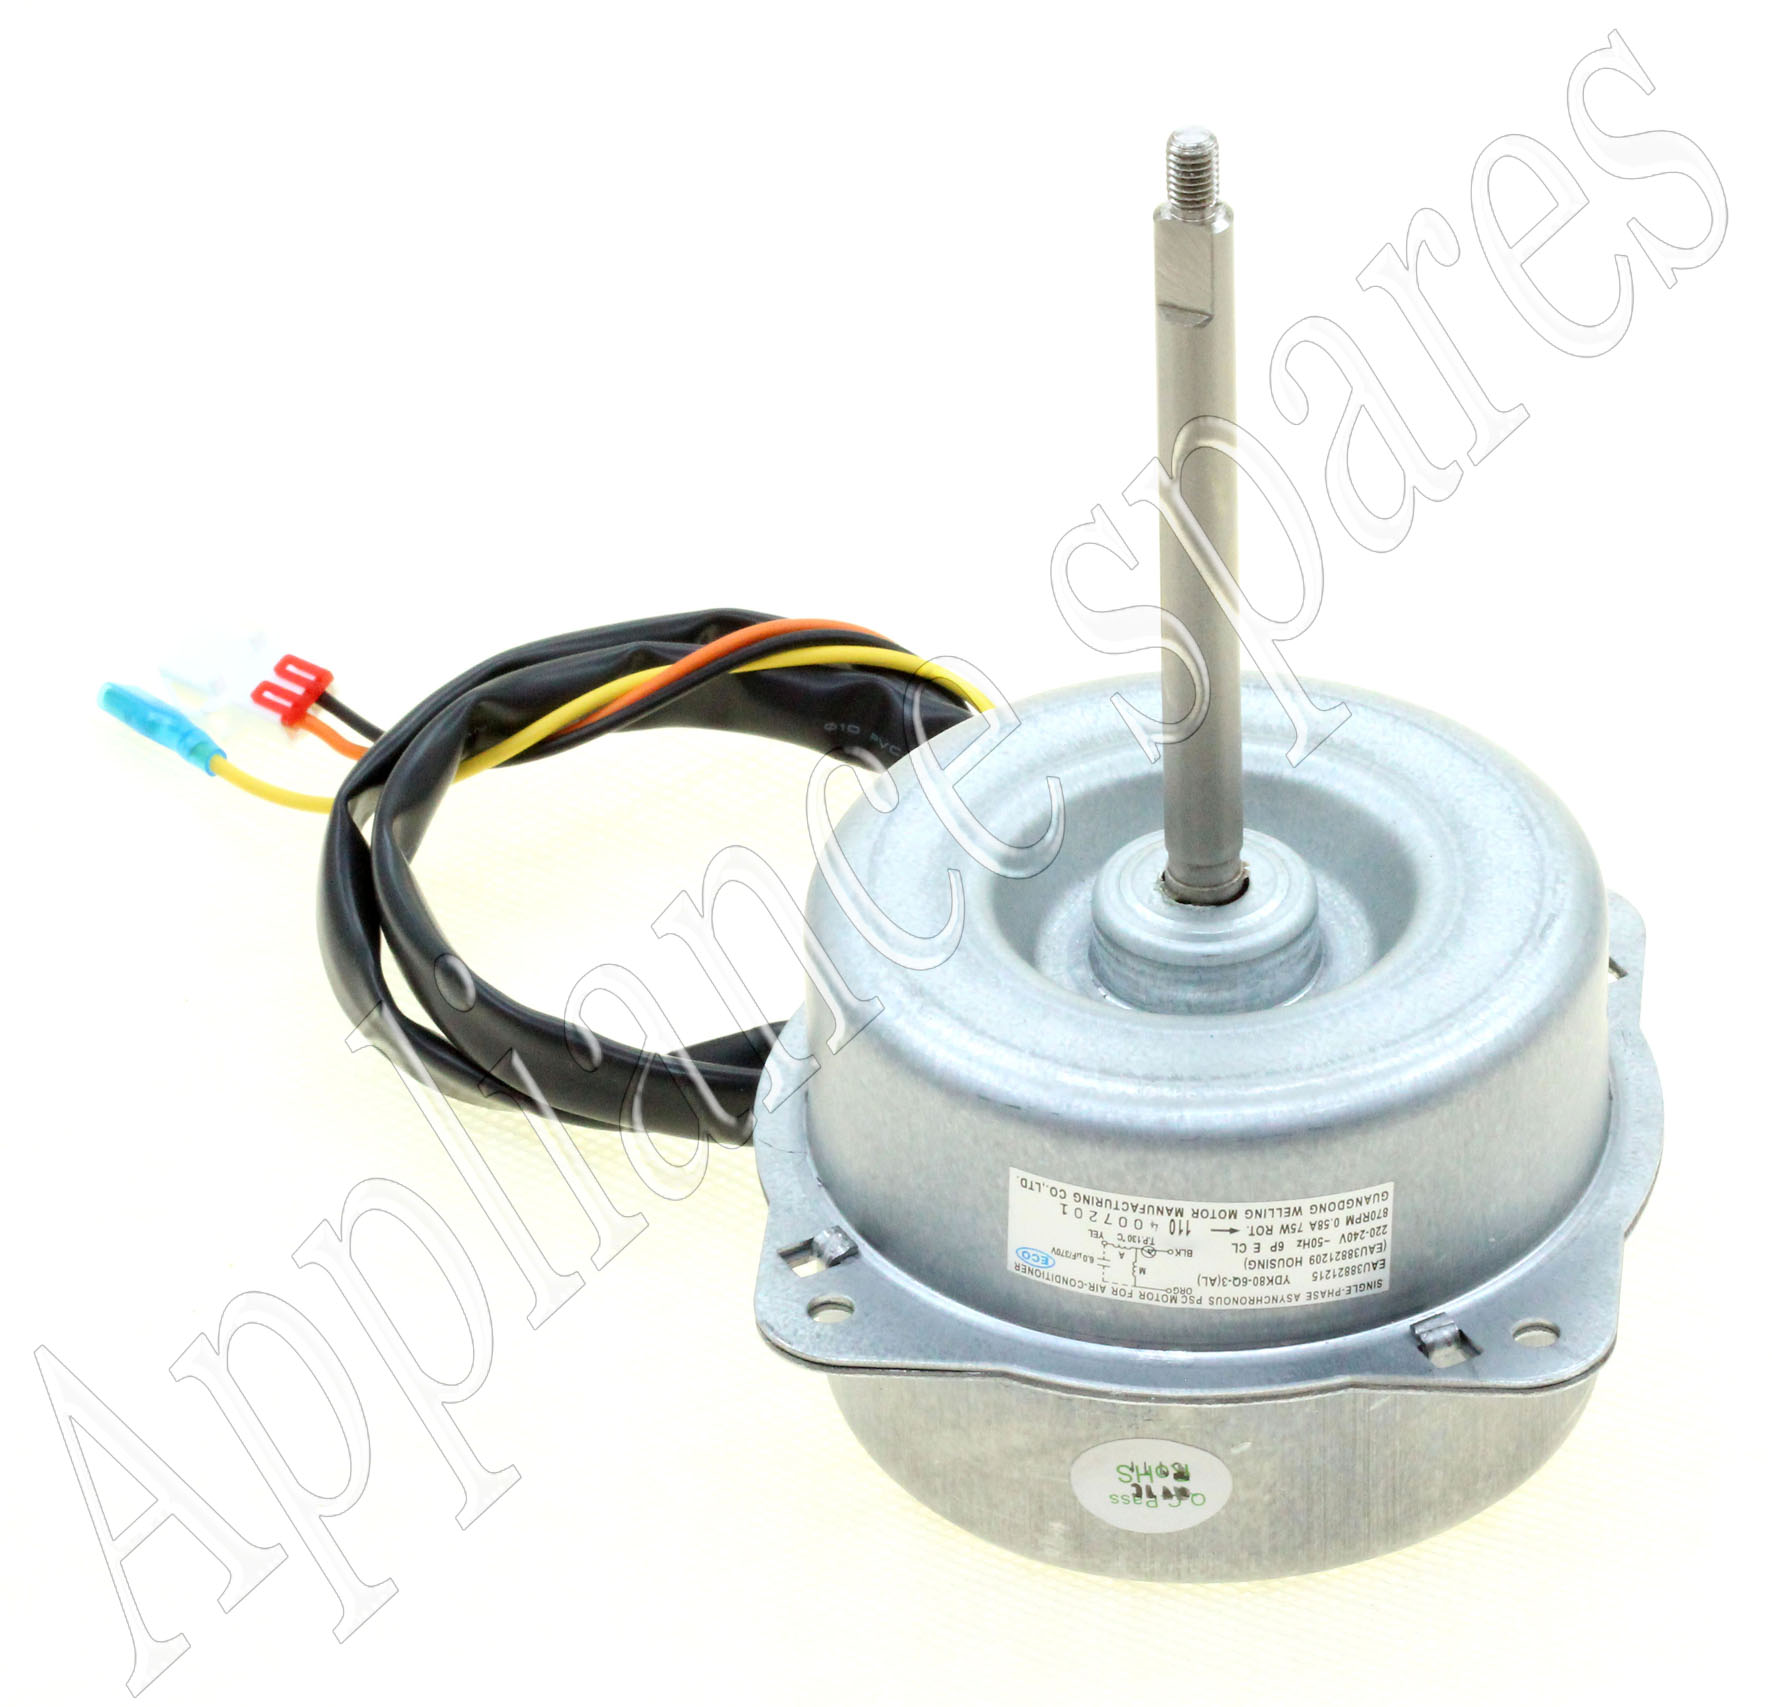 Air conditioner condenser fan motor air conditioner guided for Air conditioner compressor motor